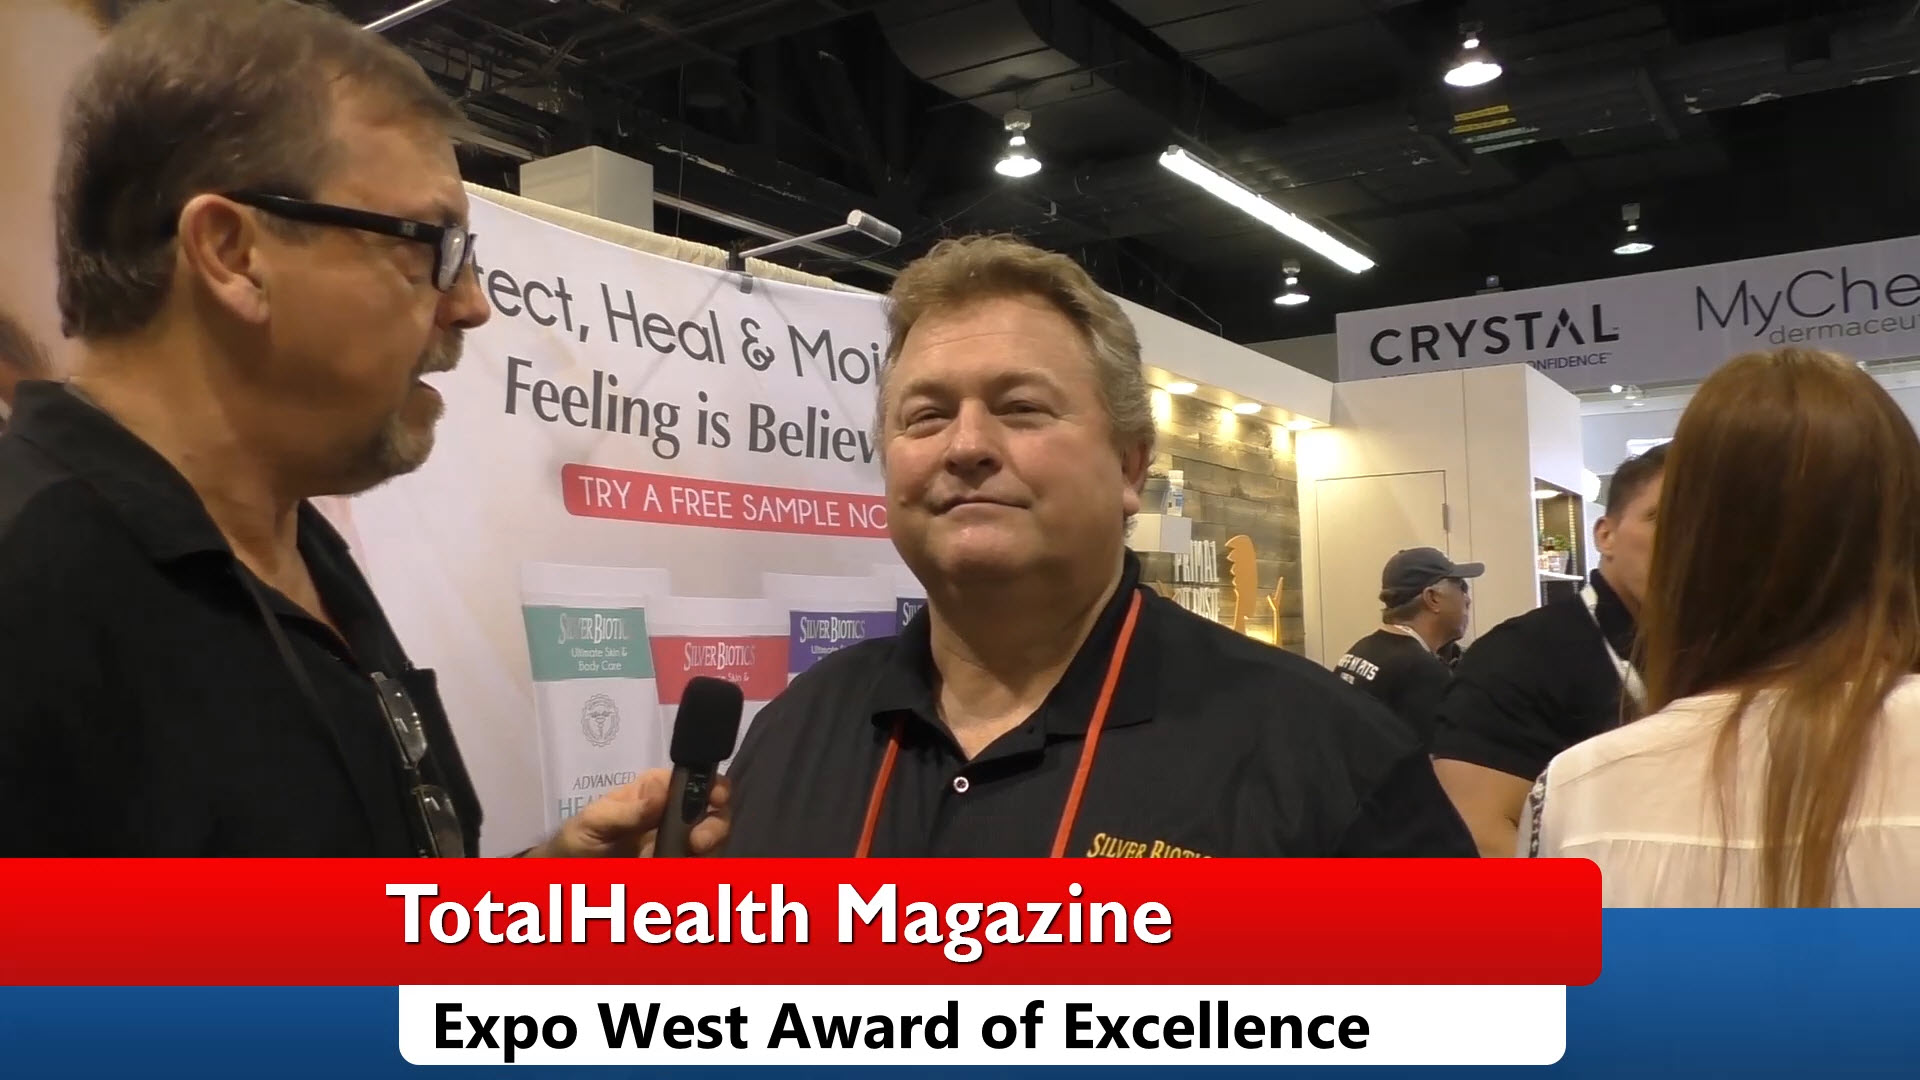 Silver Biotics Award of Excellence Expo West 2018